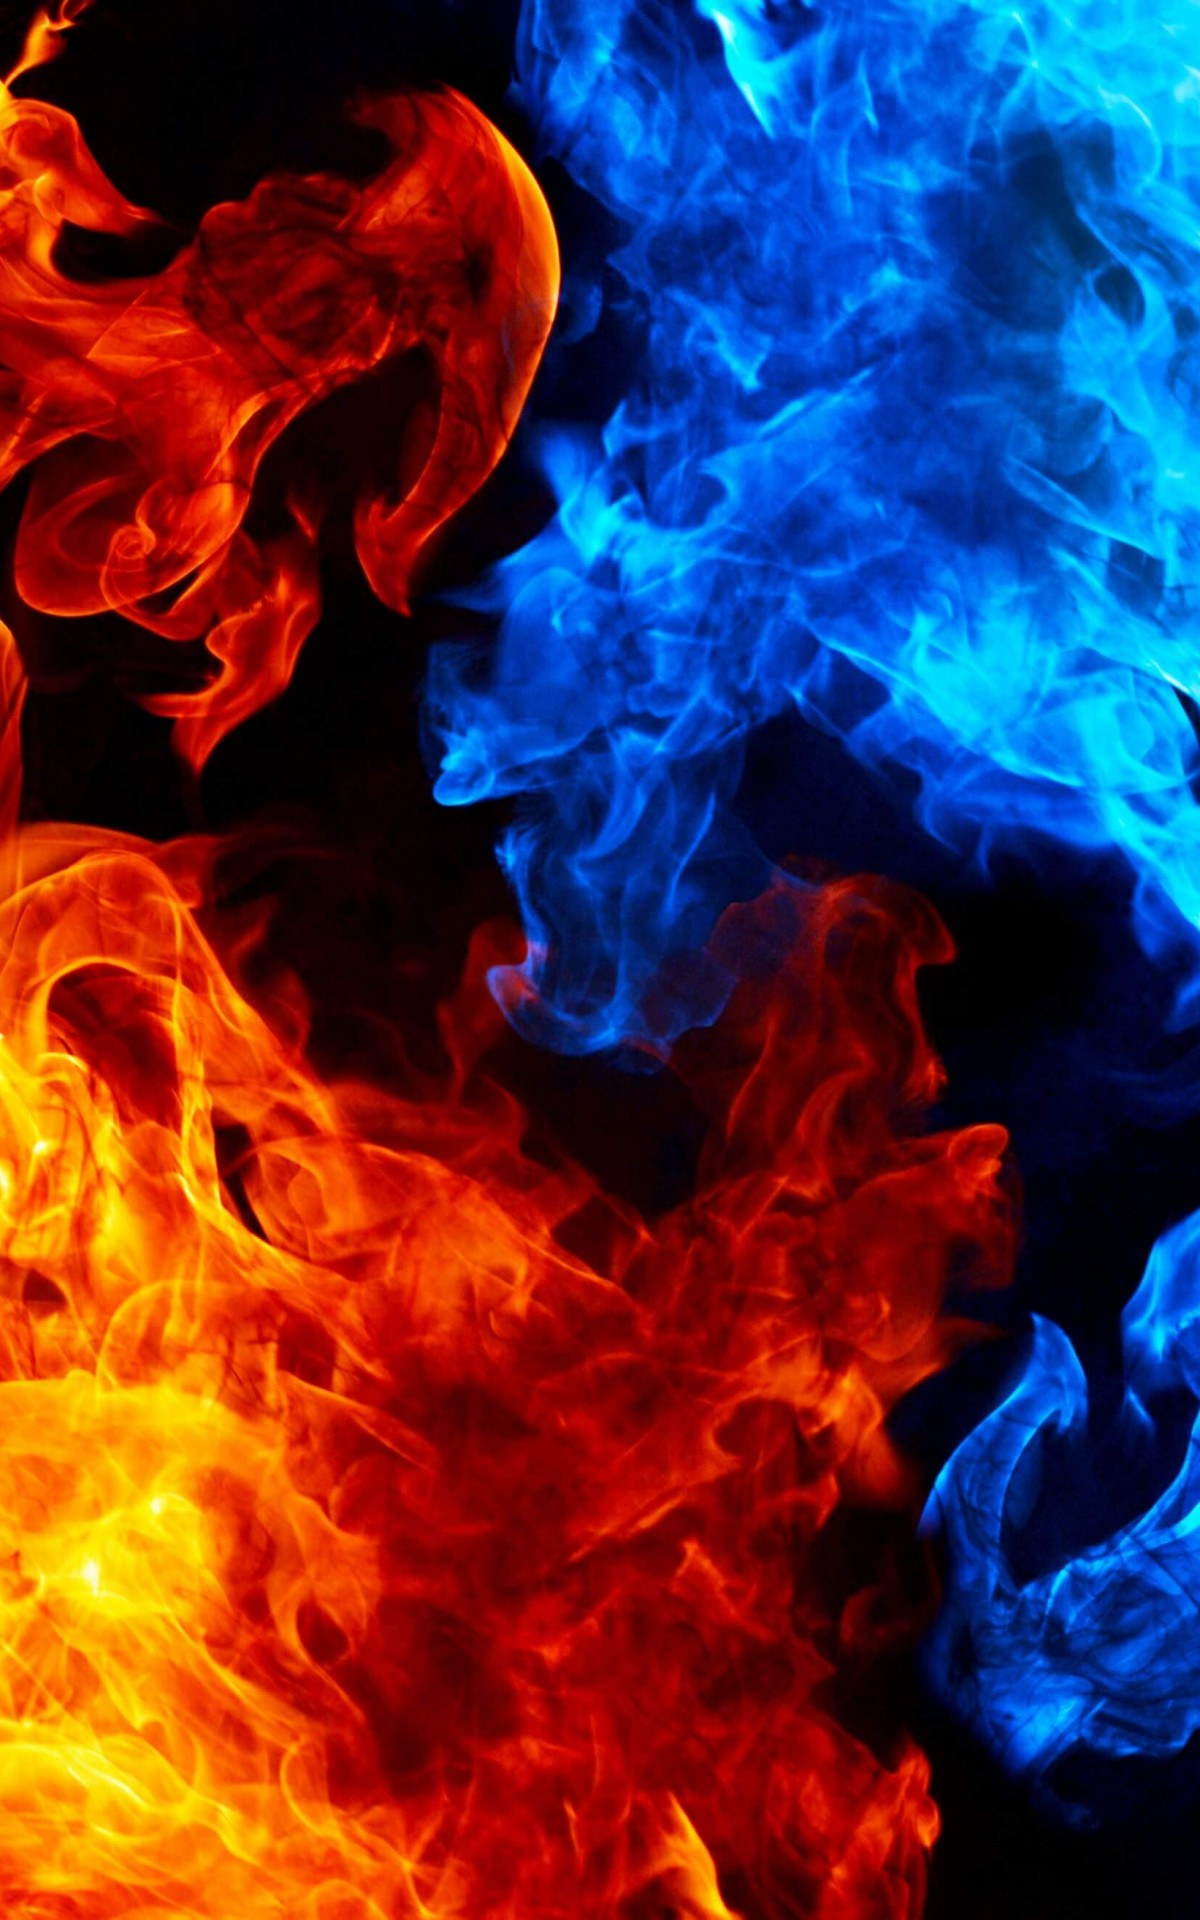 Blue And Red Fire HD wallpaper for Kindle Fire HDX   HDwallpapersnet 1200x1920